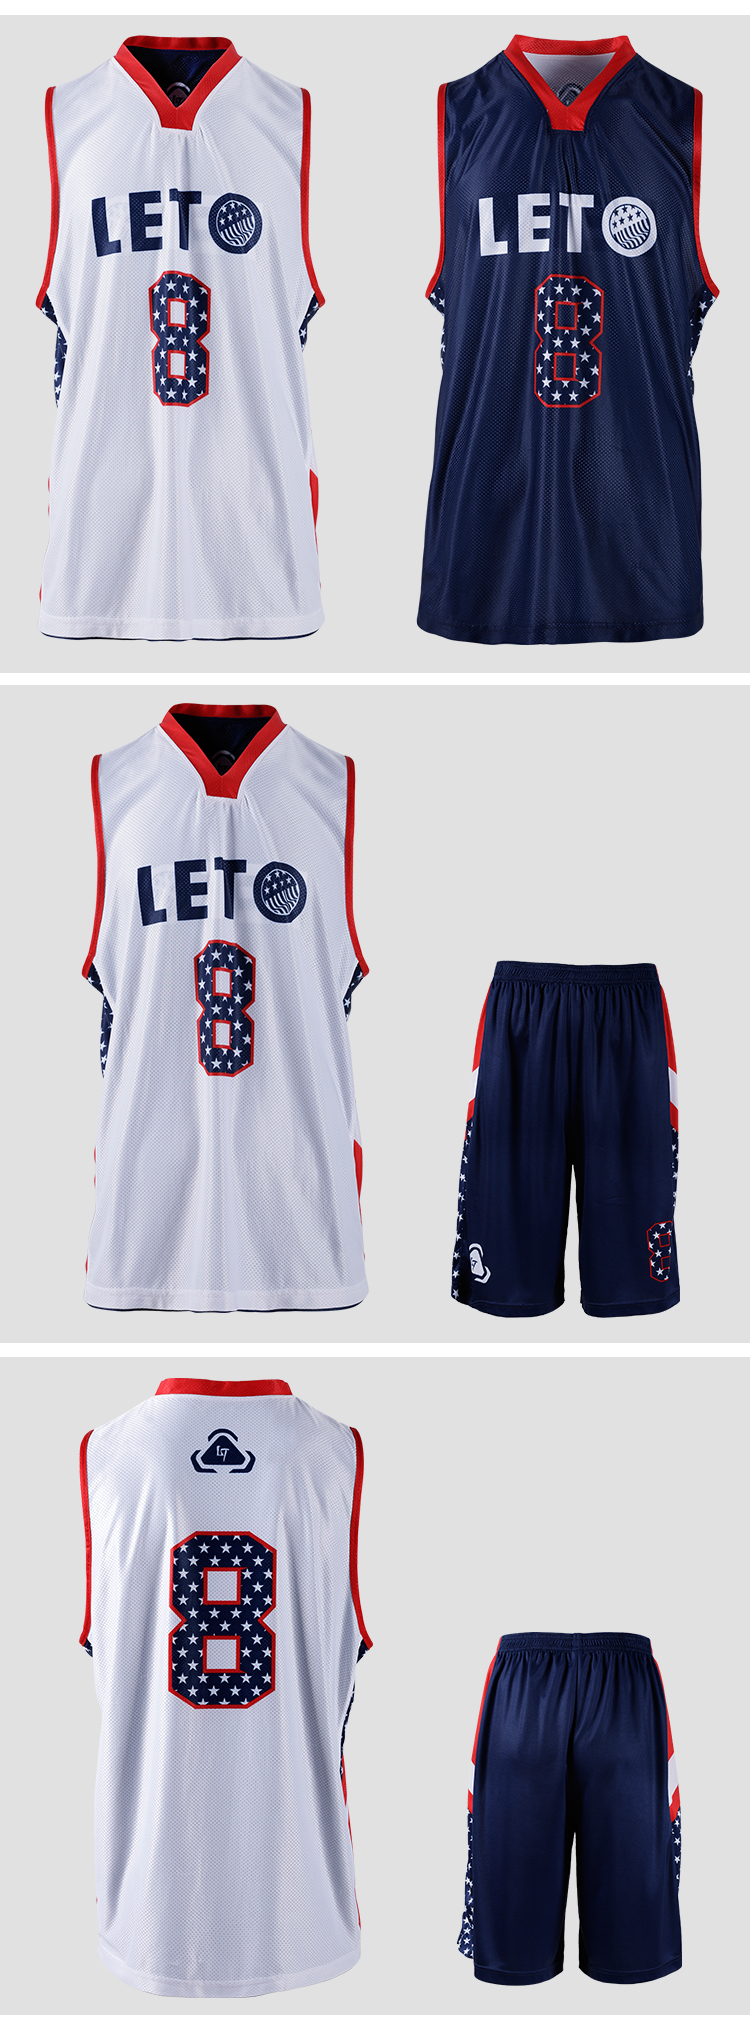 Wicking basketball uniforms hot design basketball gear team wear kits